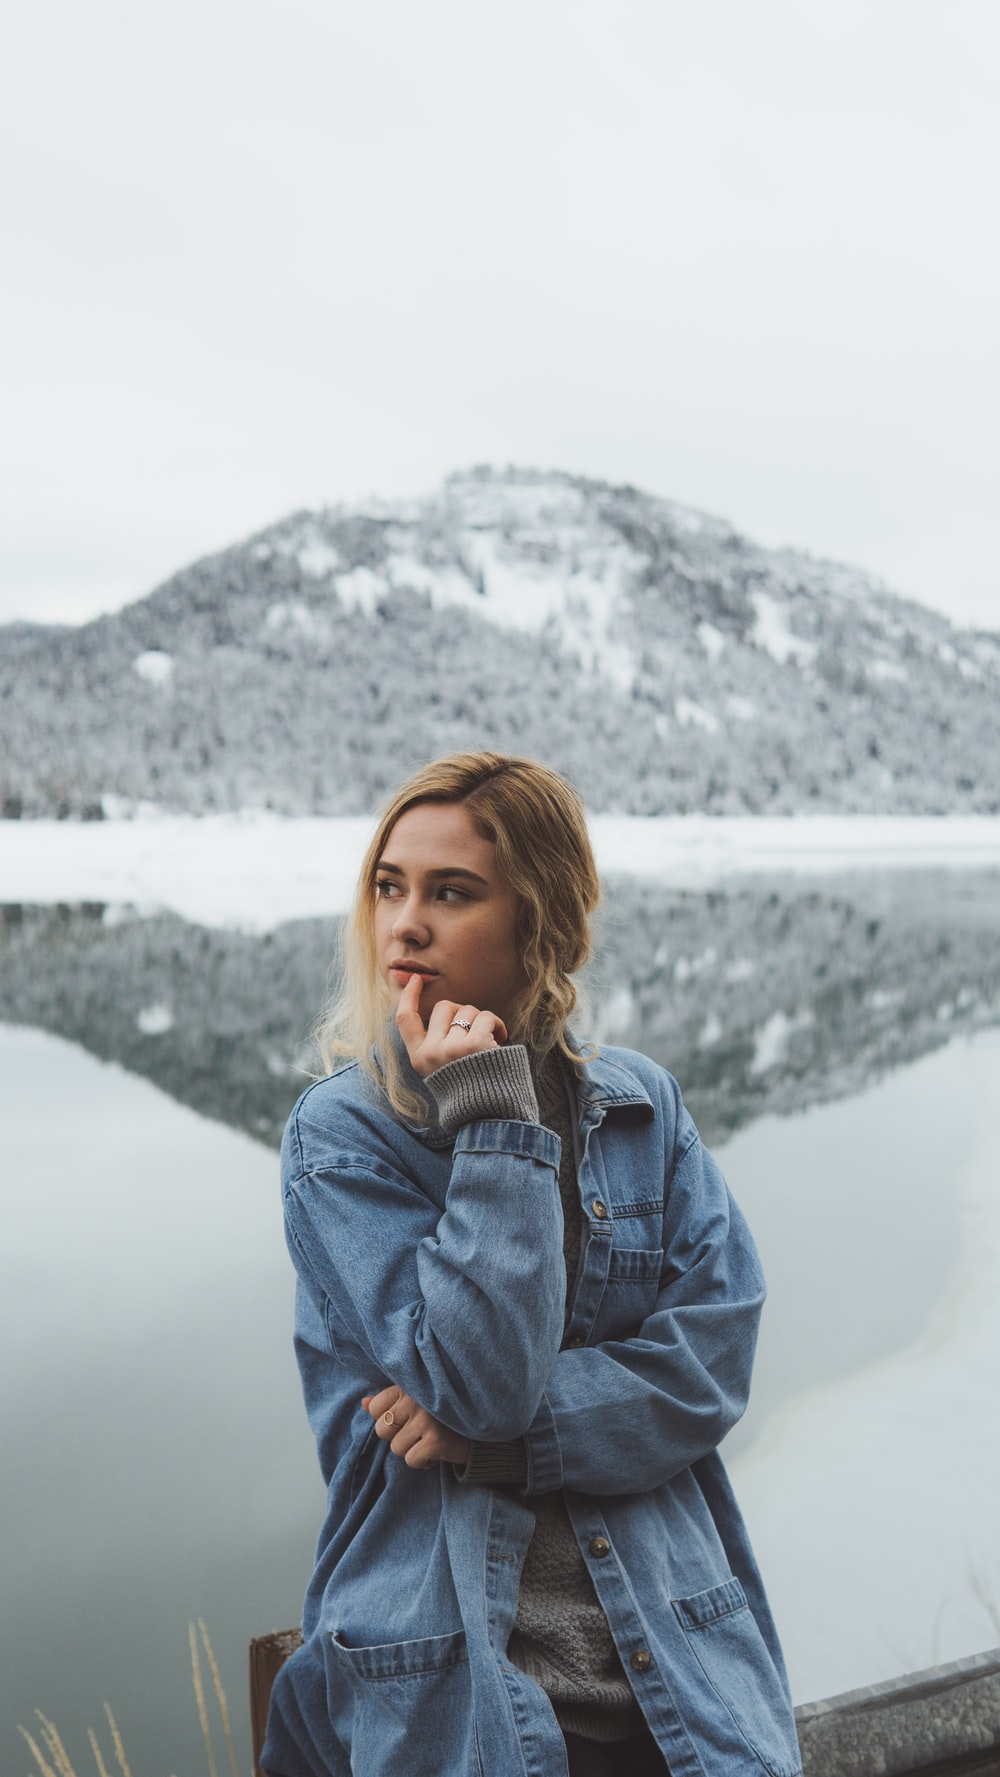 shallow focus photo of woman in blue denim jacket standing near mountain